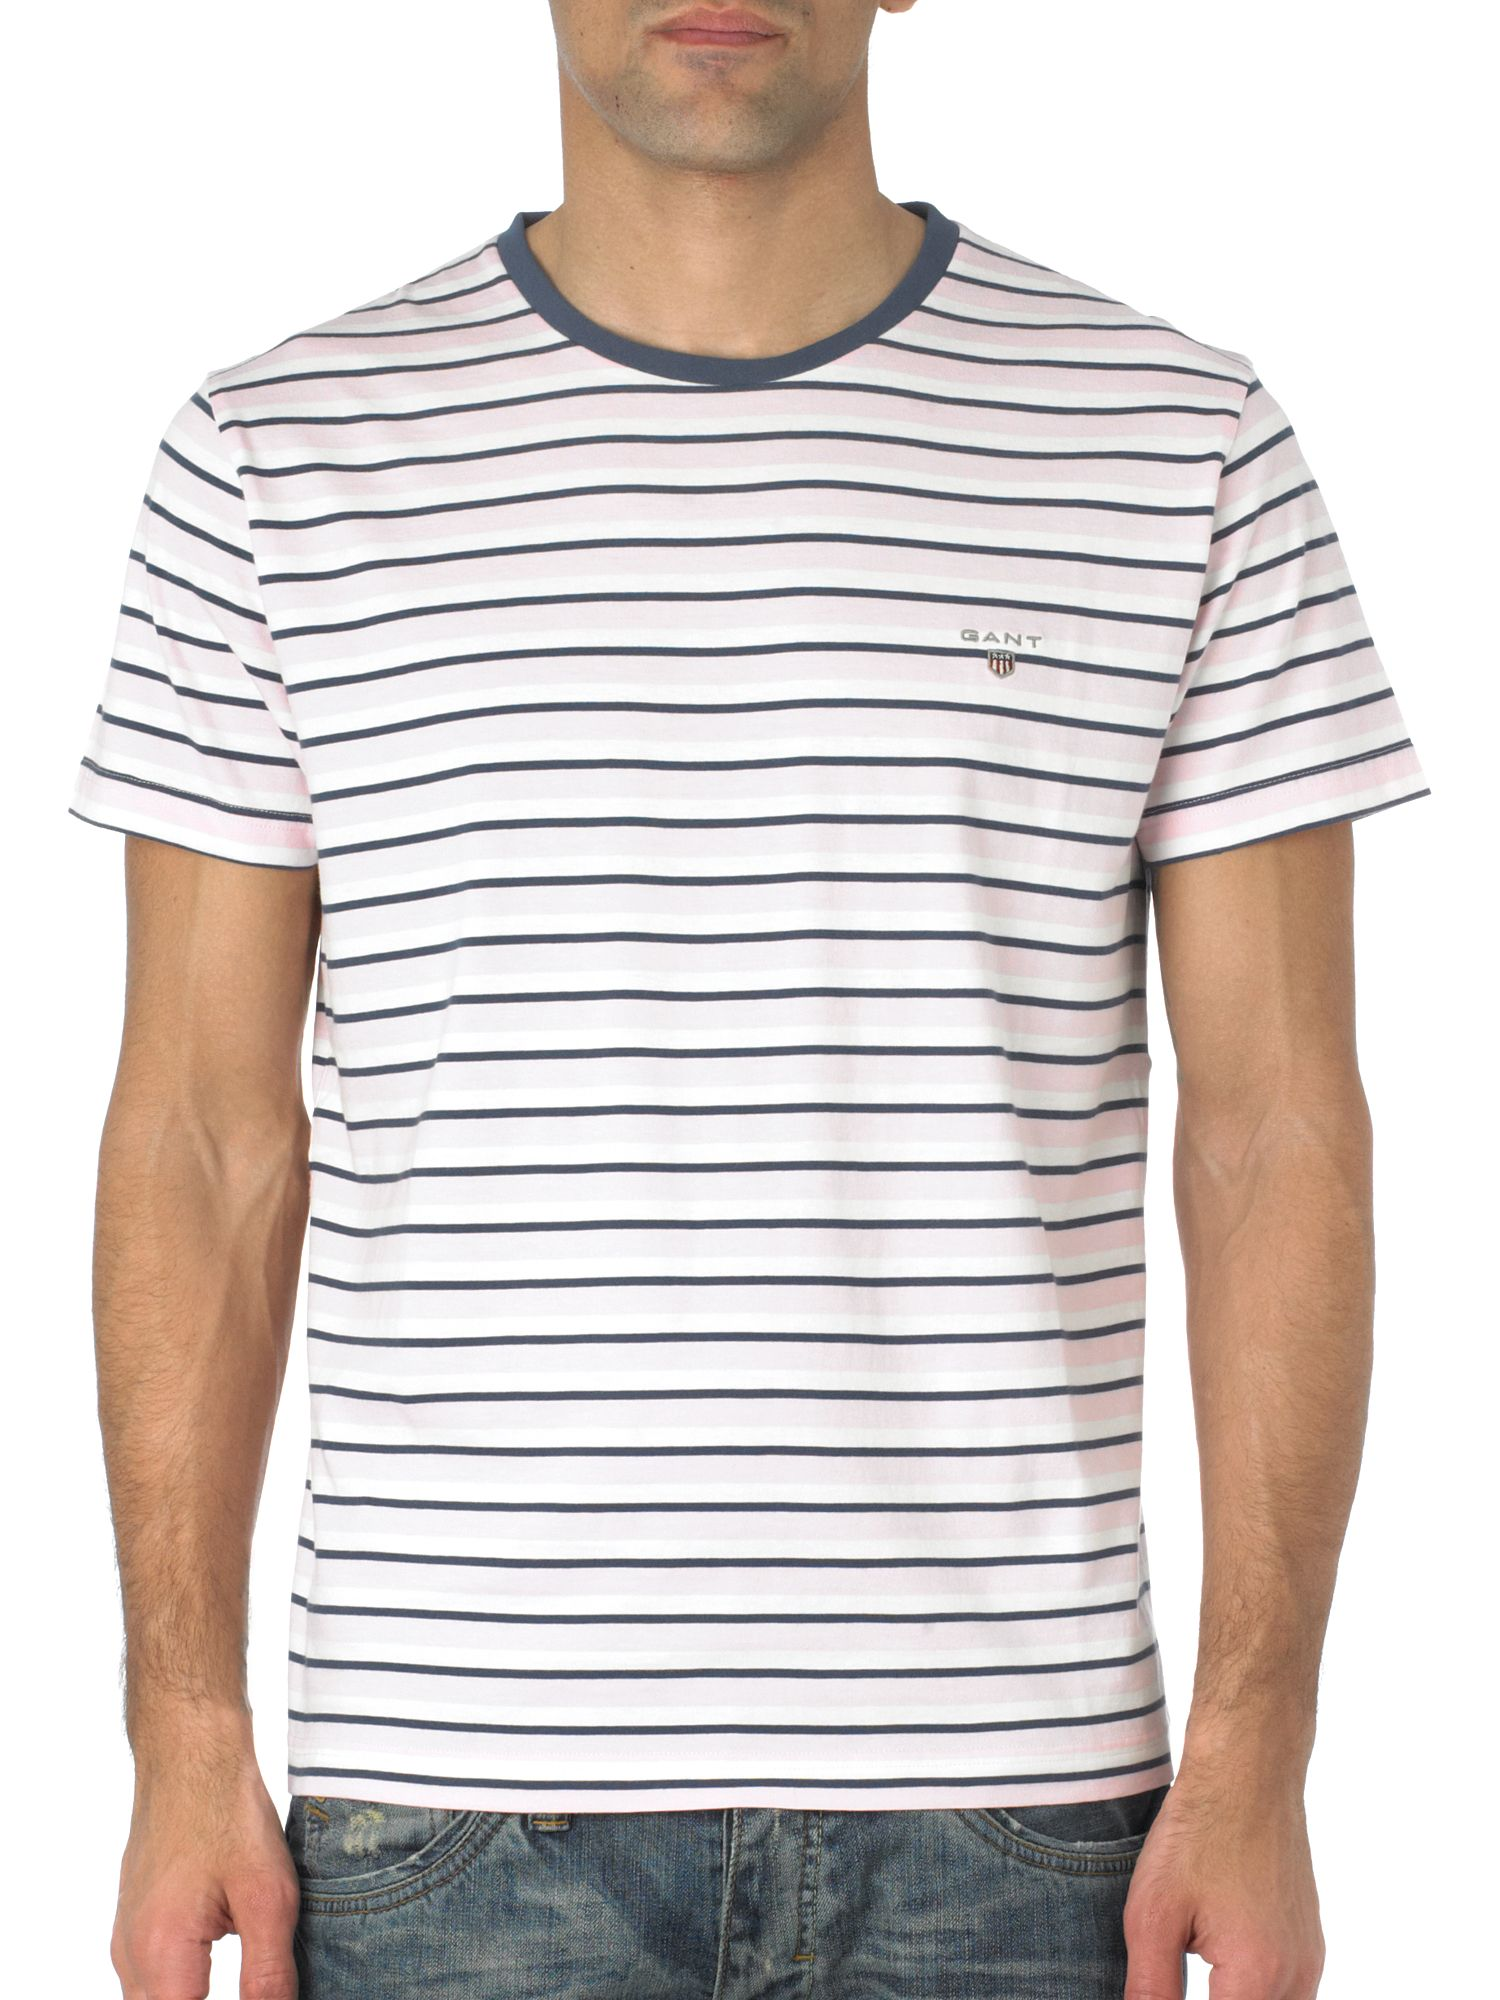 Gant Breton striped crew neck T-shirt Blue product image